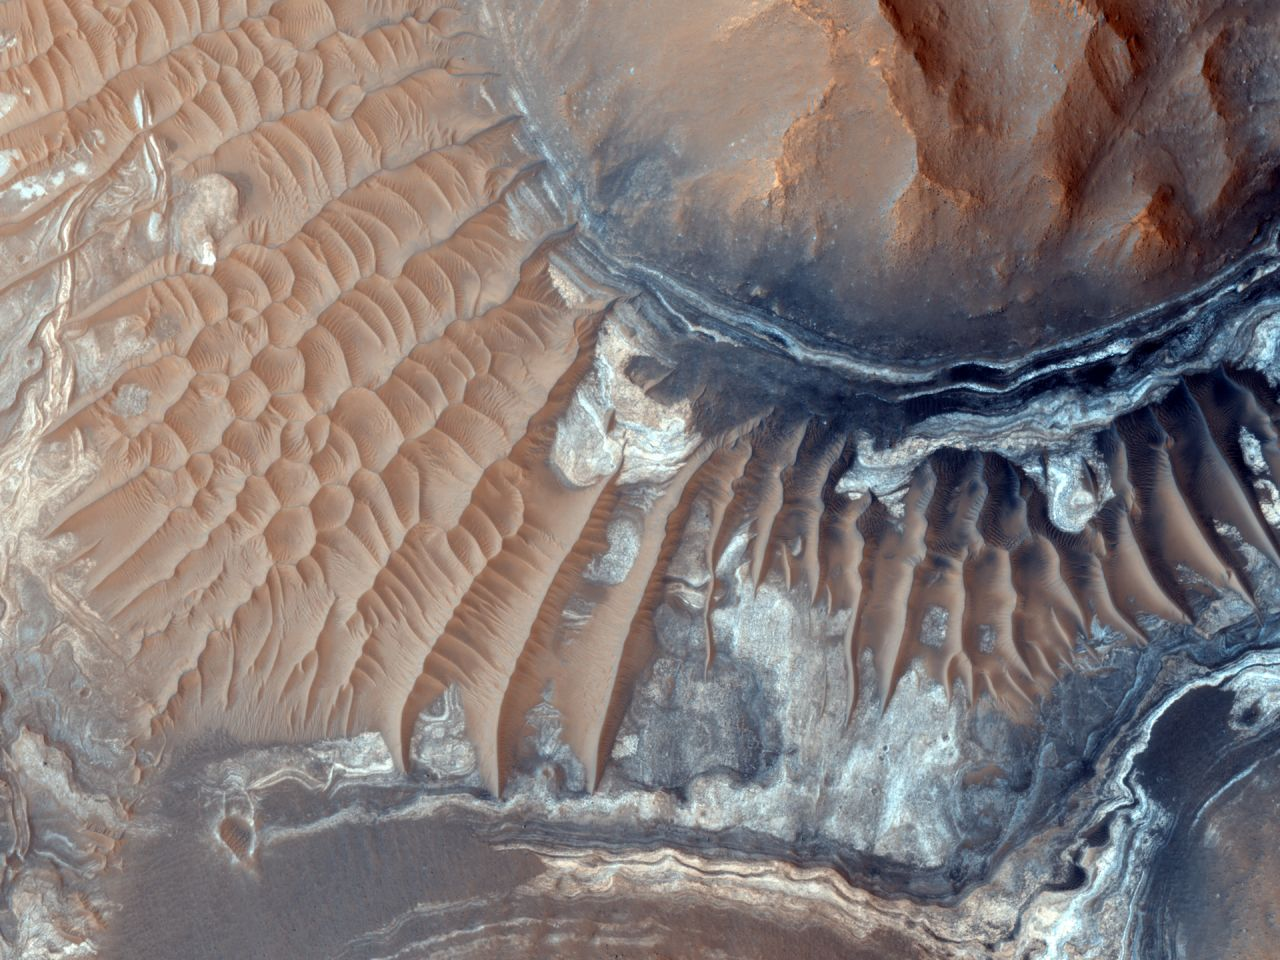 A region of the Noctis Labyrinthus formation on Mars, imaged by the HiRise camera on NASA's Mars Reconnaissance Orbiter.